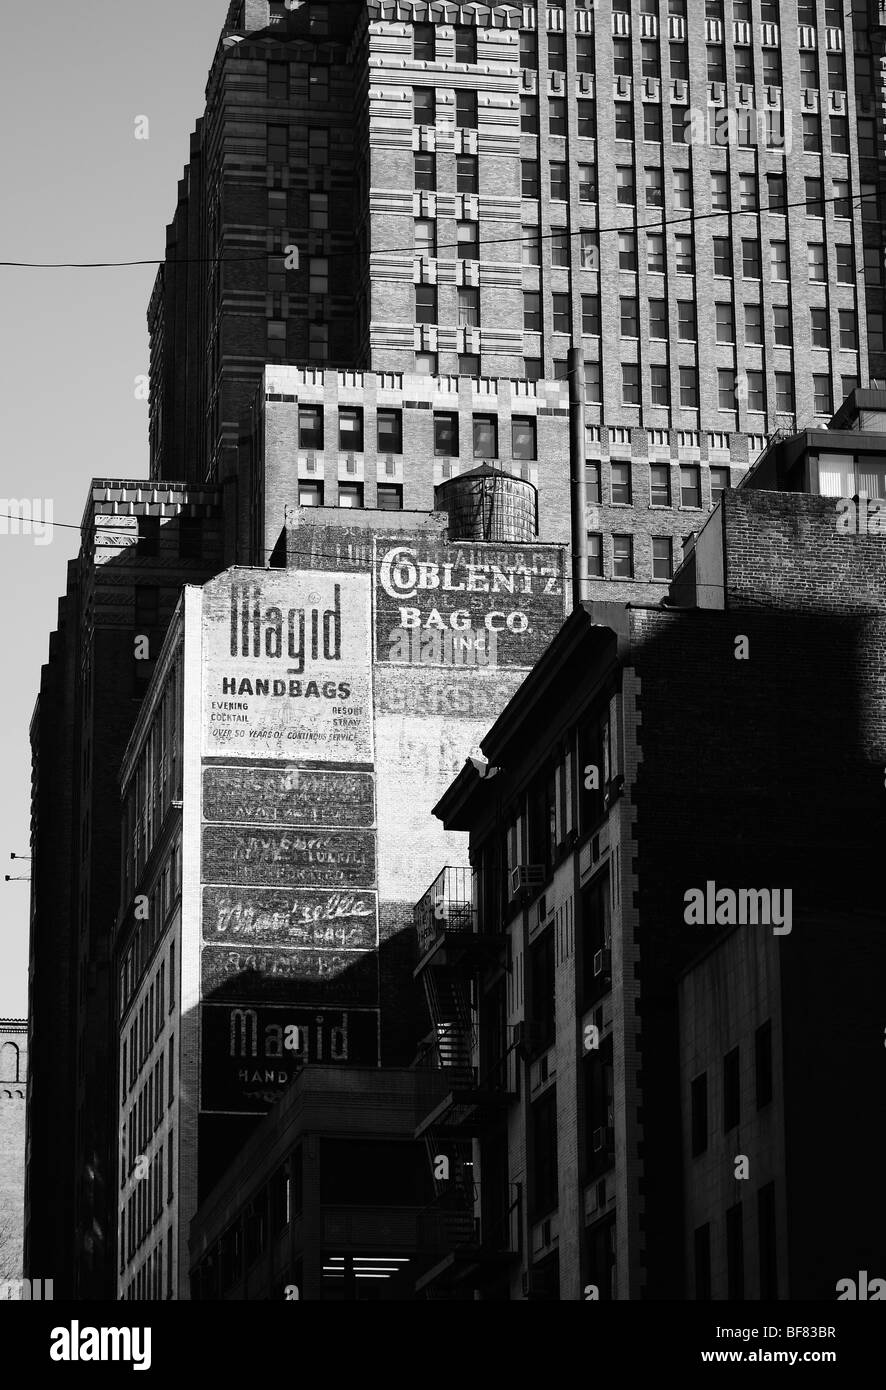 Old painted adverts on the side of buildings, Manhattan, New York, USA - Stock Image